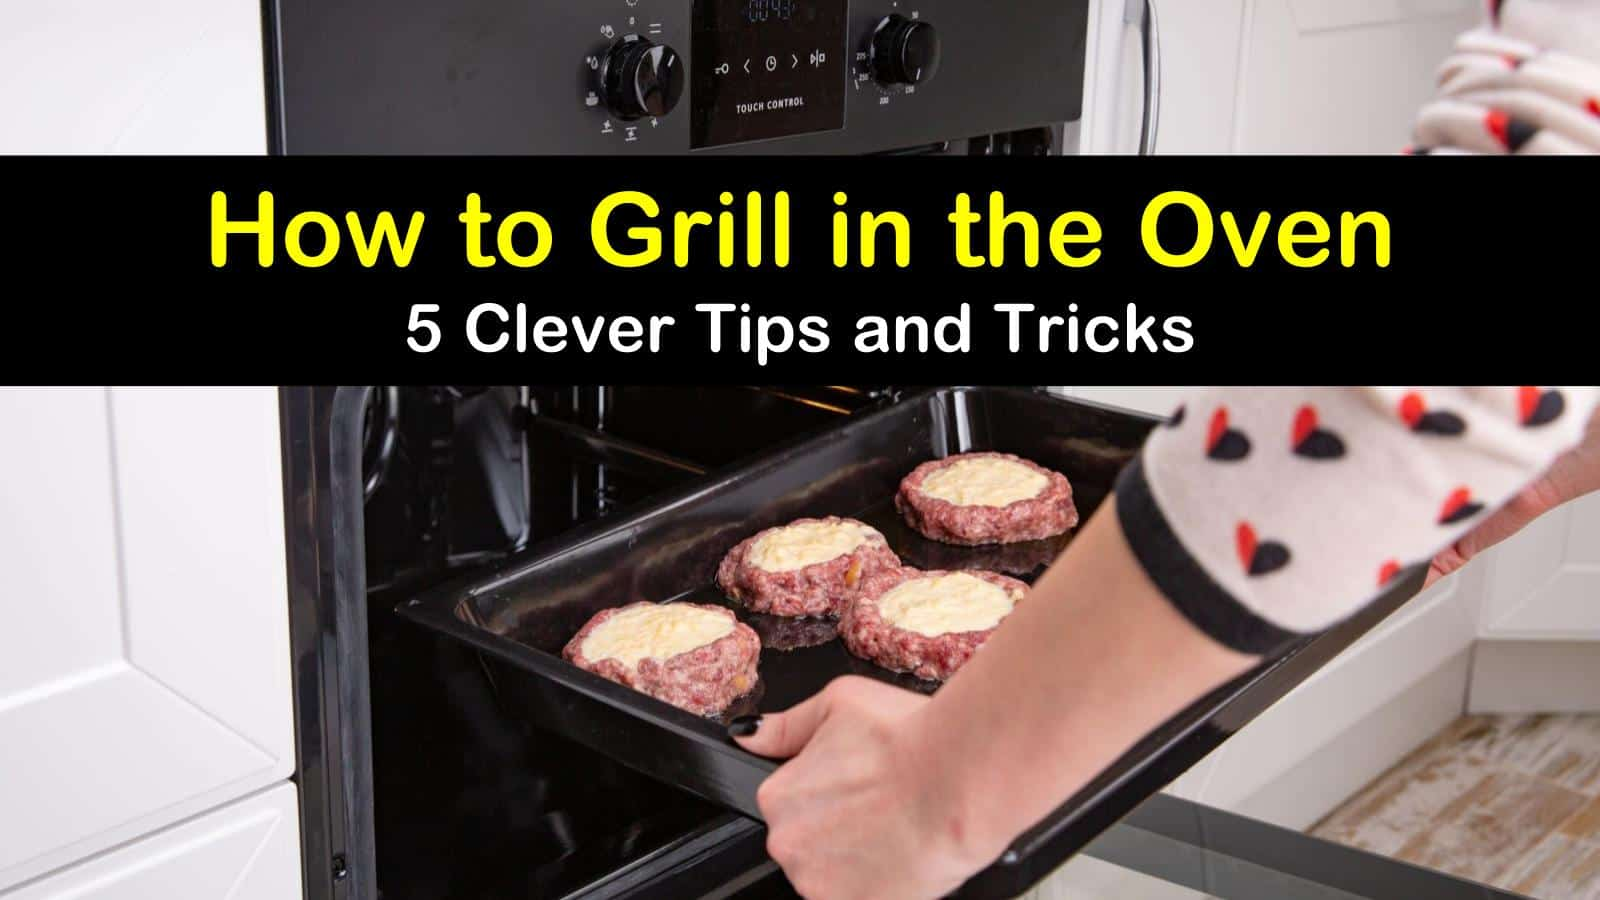 how to grill in the oven titleimg1